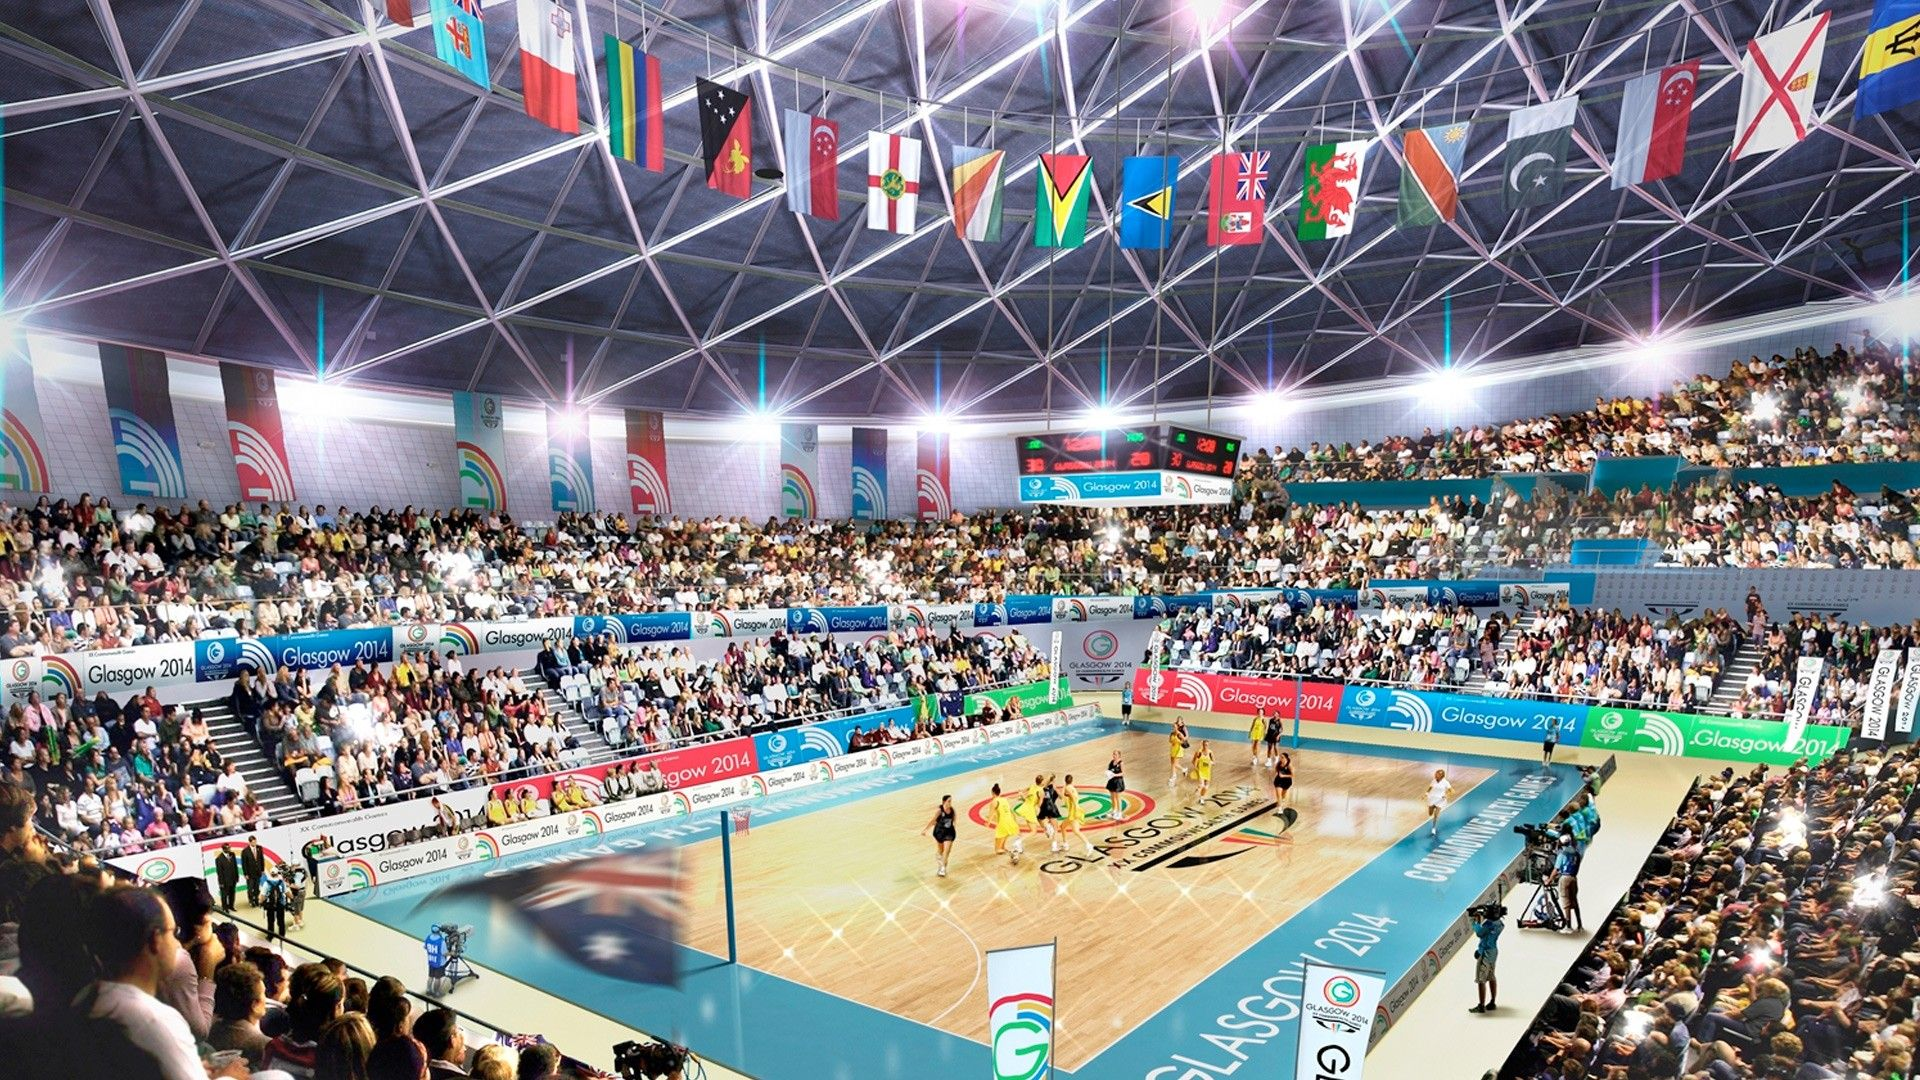 commonwealth games 2014 venues Commonwealth games, Uk tv